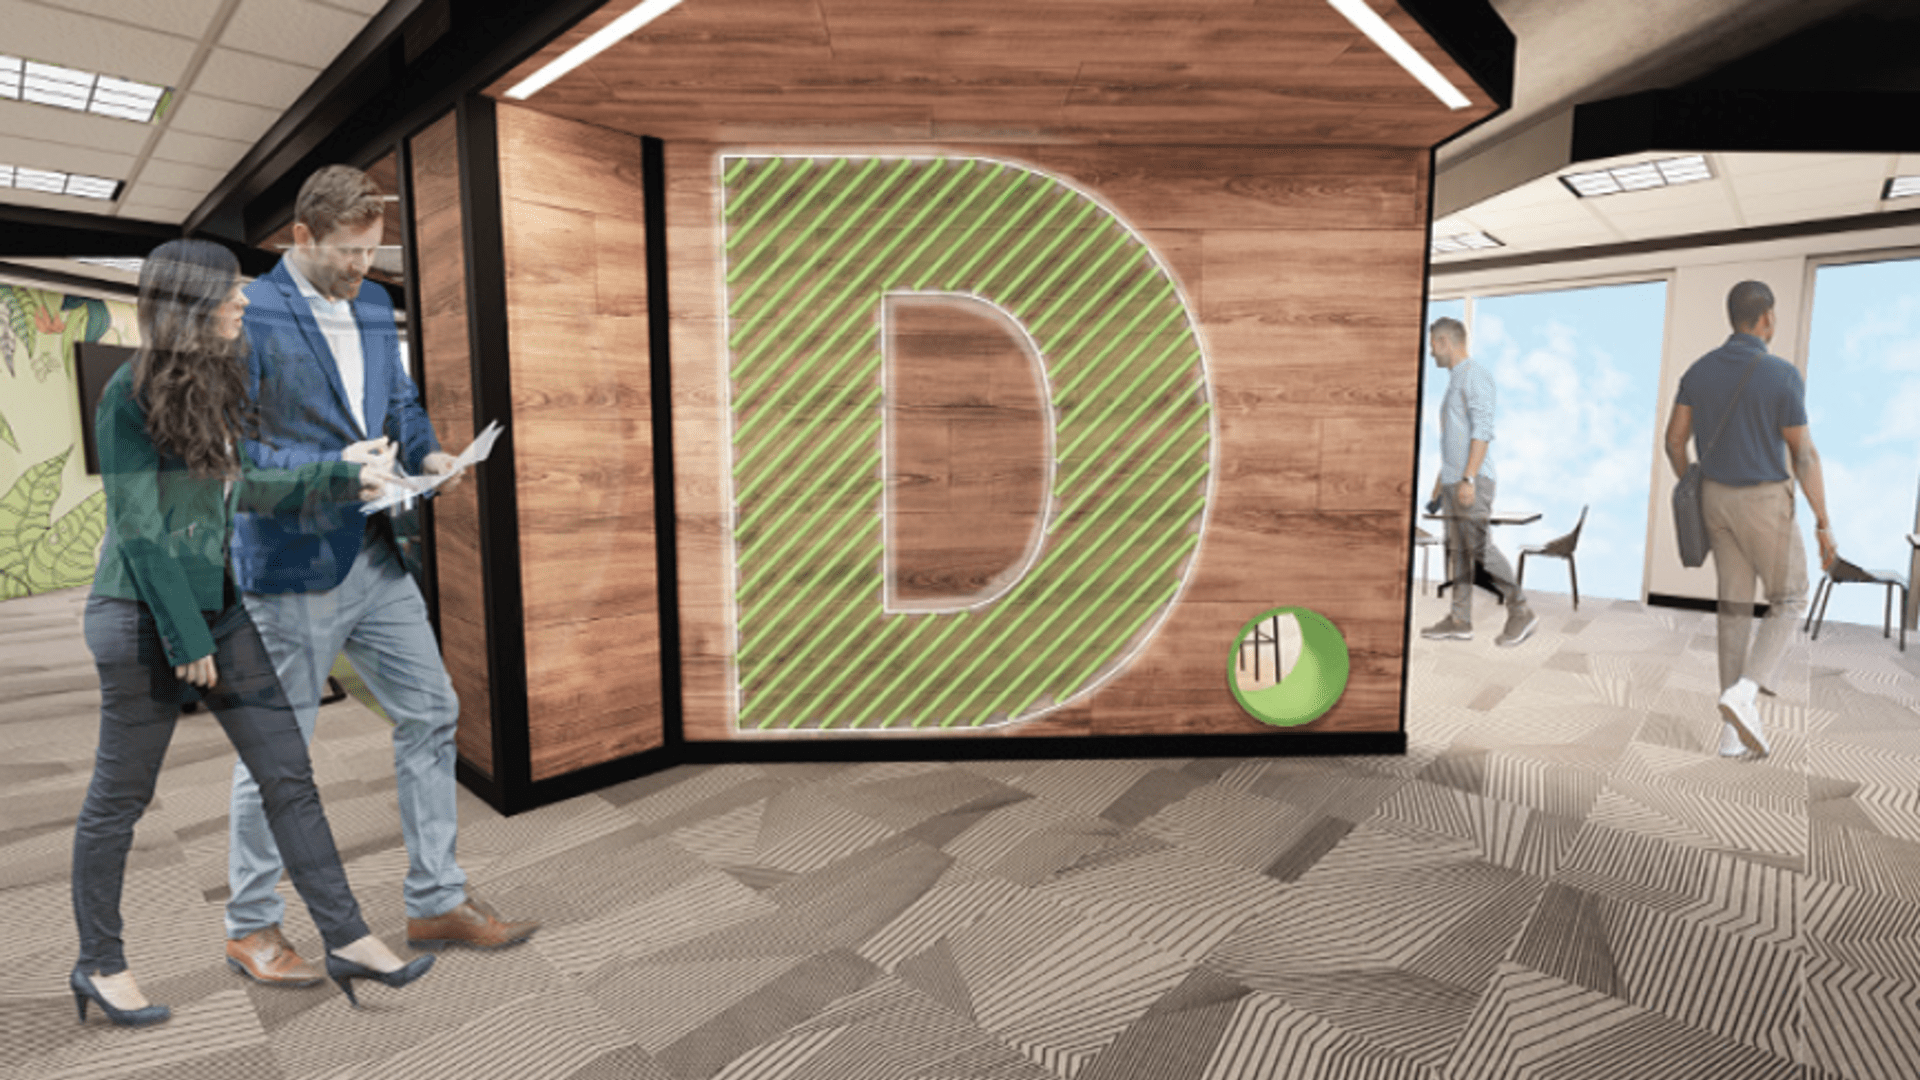 The Deloitte welcome wall design rendering, developed in partnership with SCADpro for Deloitte Digital's virtual studio, currently in development